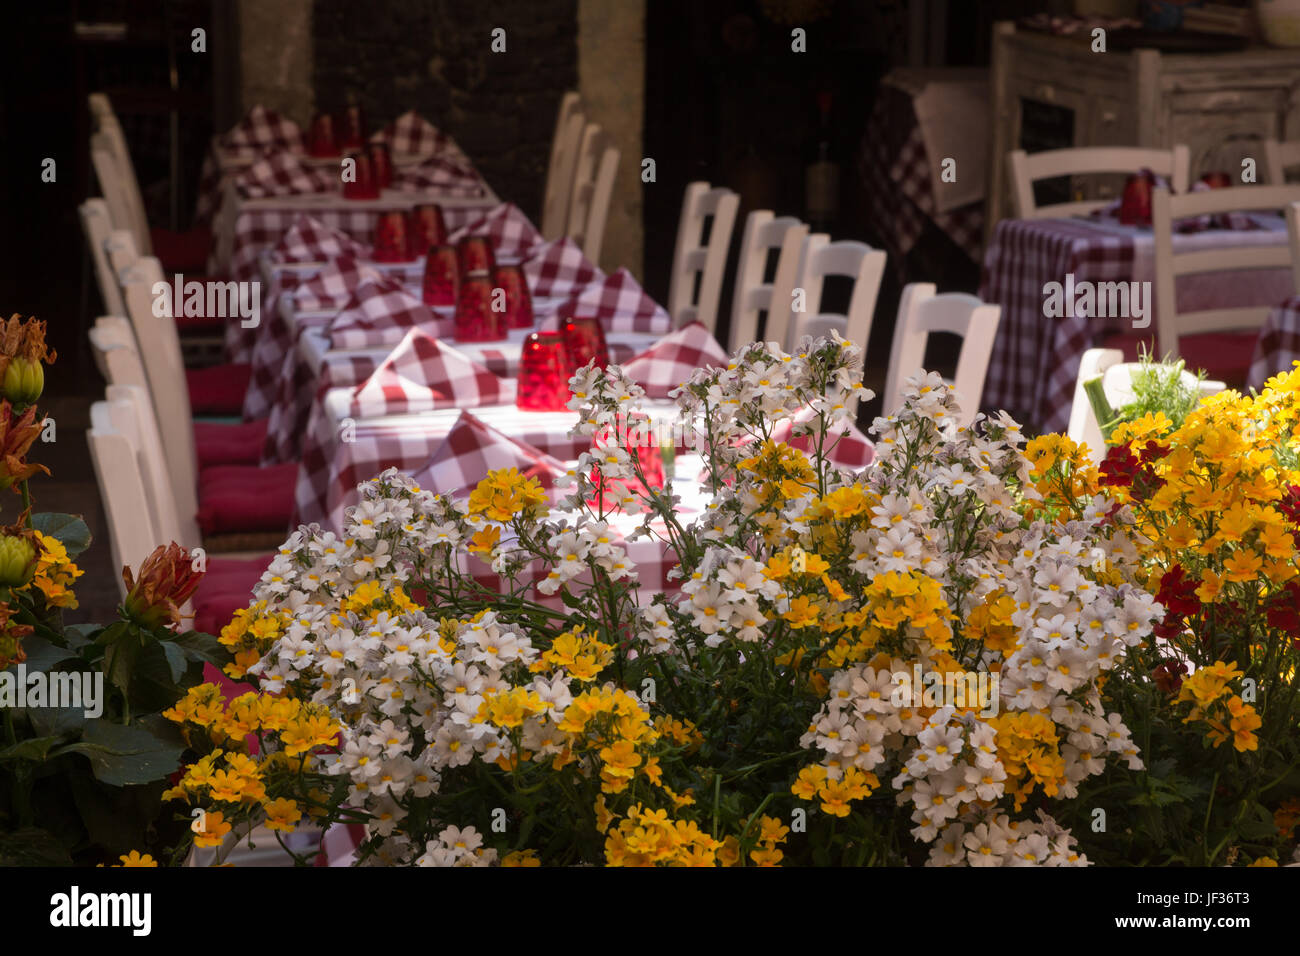 Flowers in front of Al fresco dining tables set with red checked cloths and chairs outside restaurant in Taormina, - Stock Image